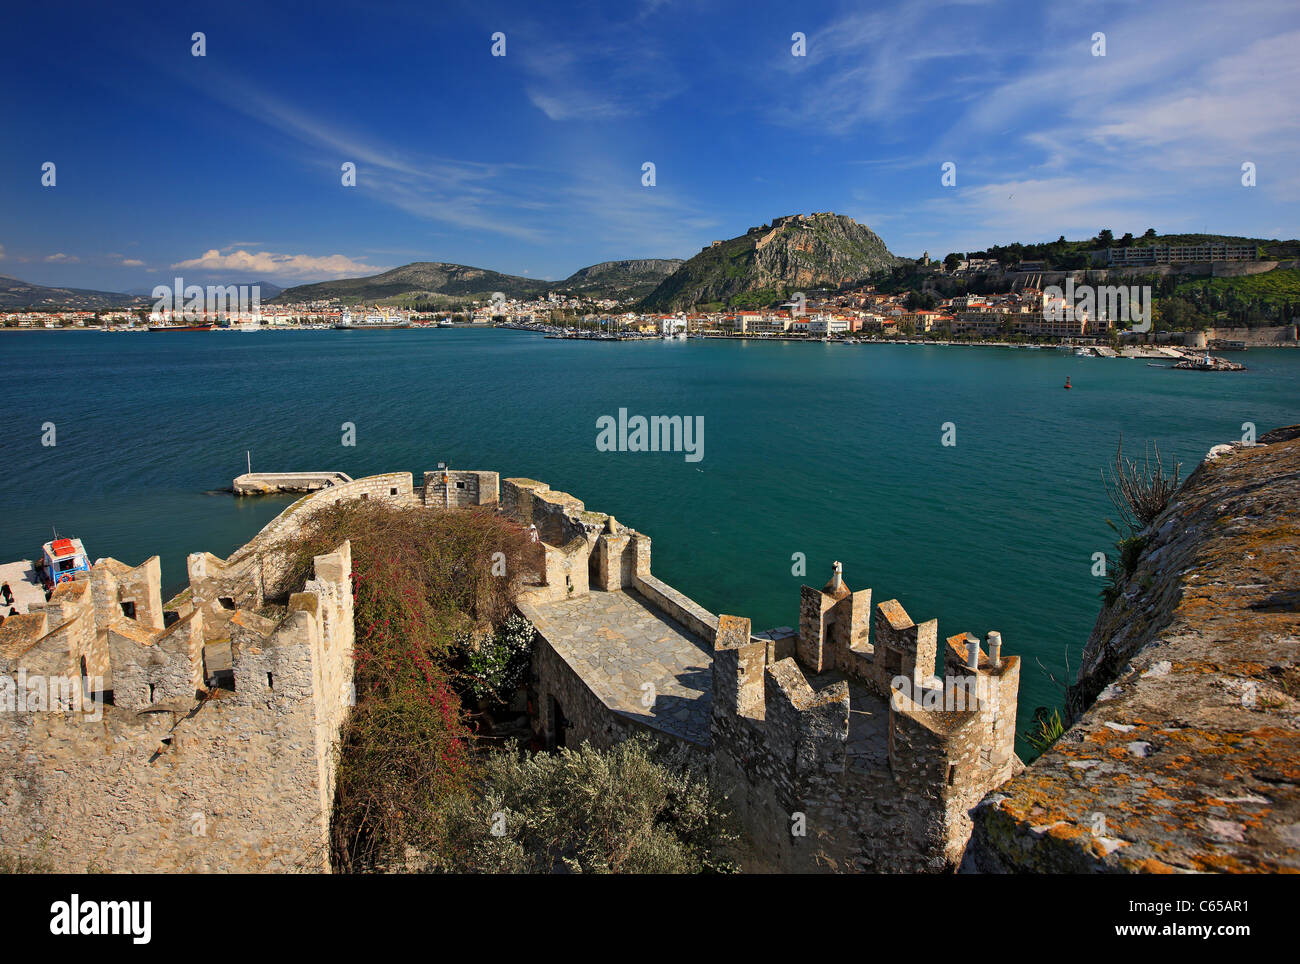 Inside view of Bourtzi castle upon a tiny island, with Nafplio town and Palamidi castle in the background,  Greece Stock Photo